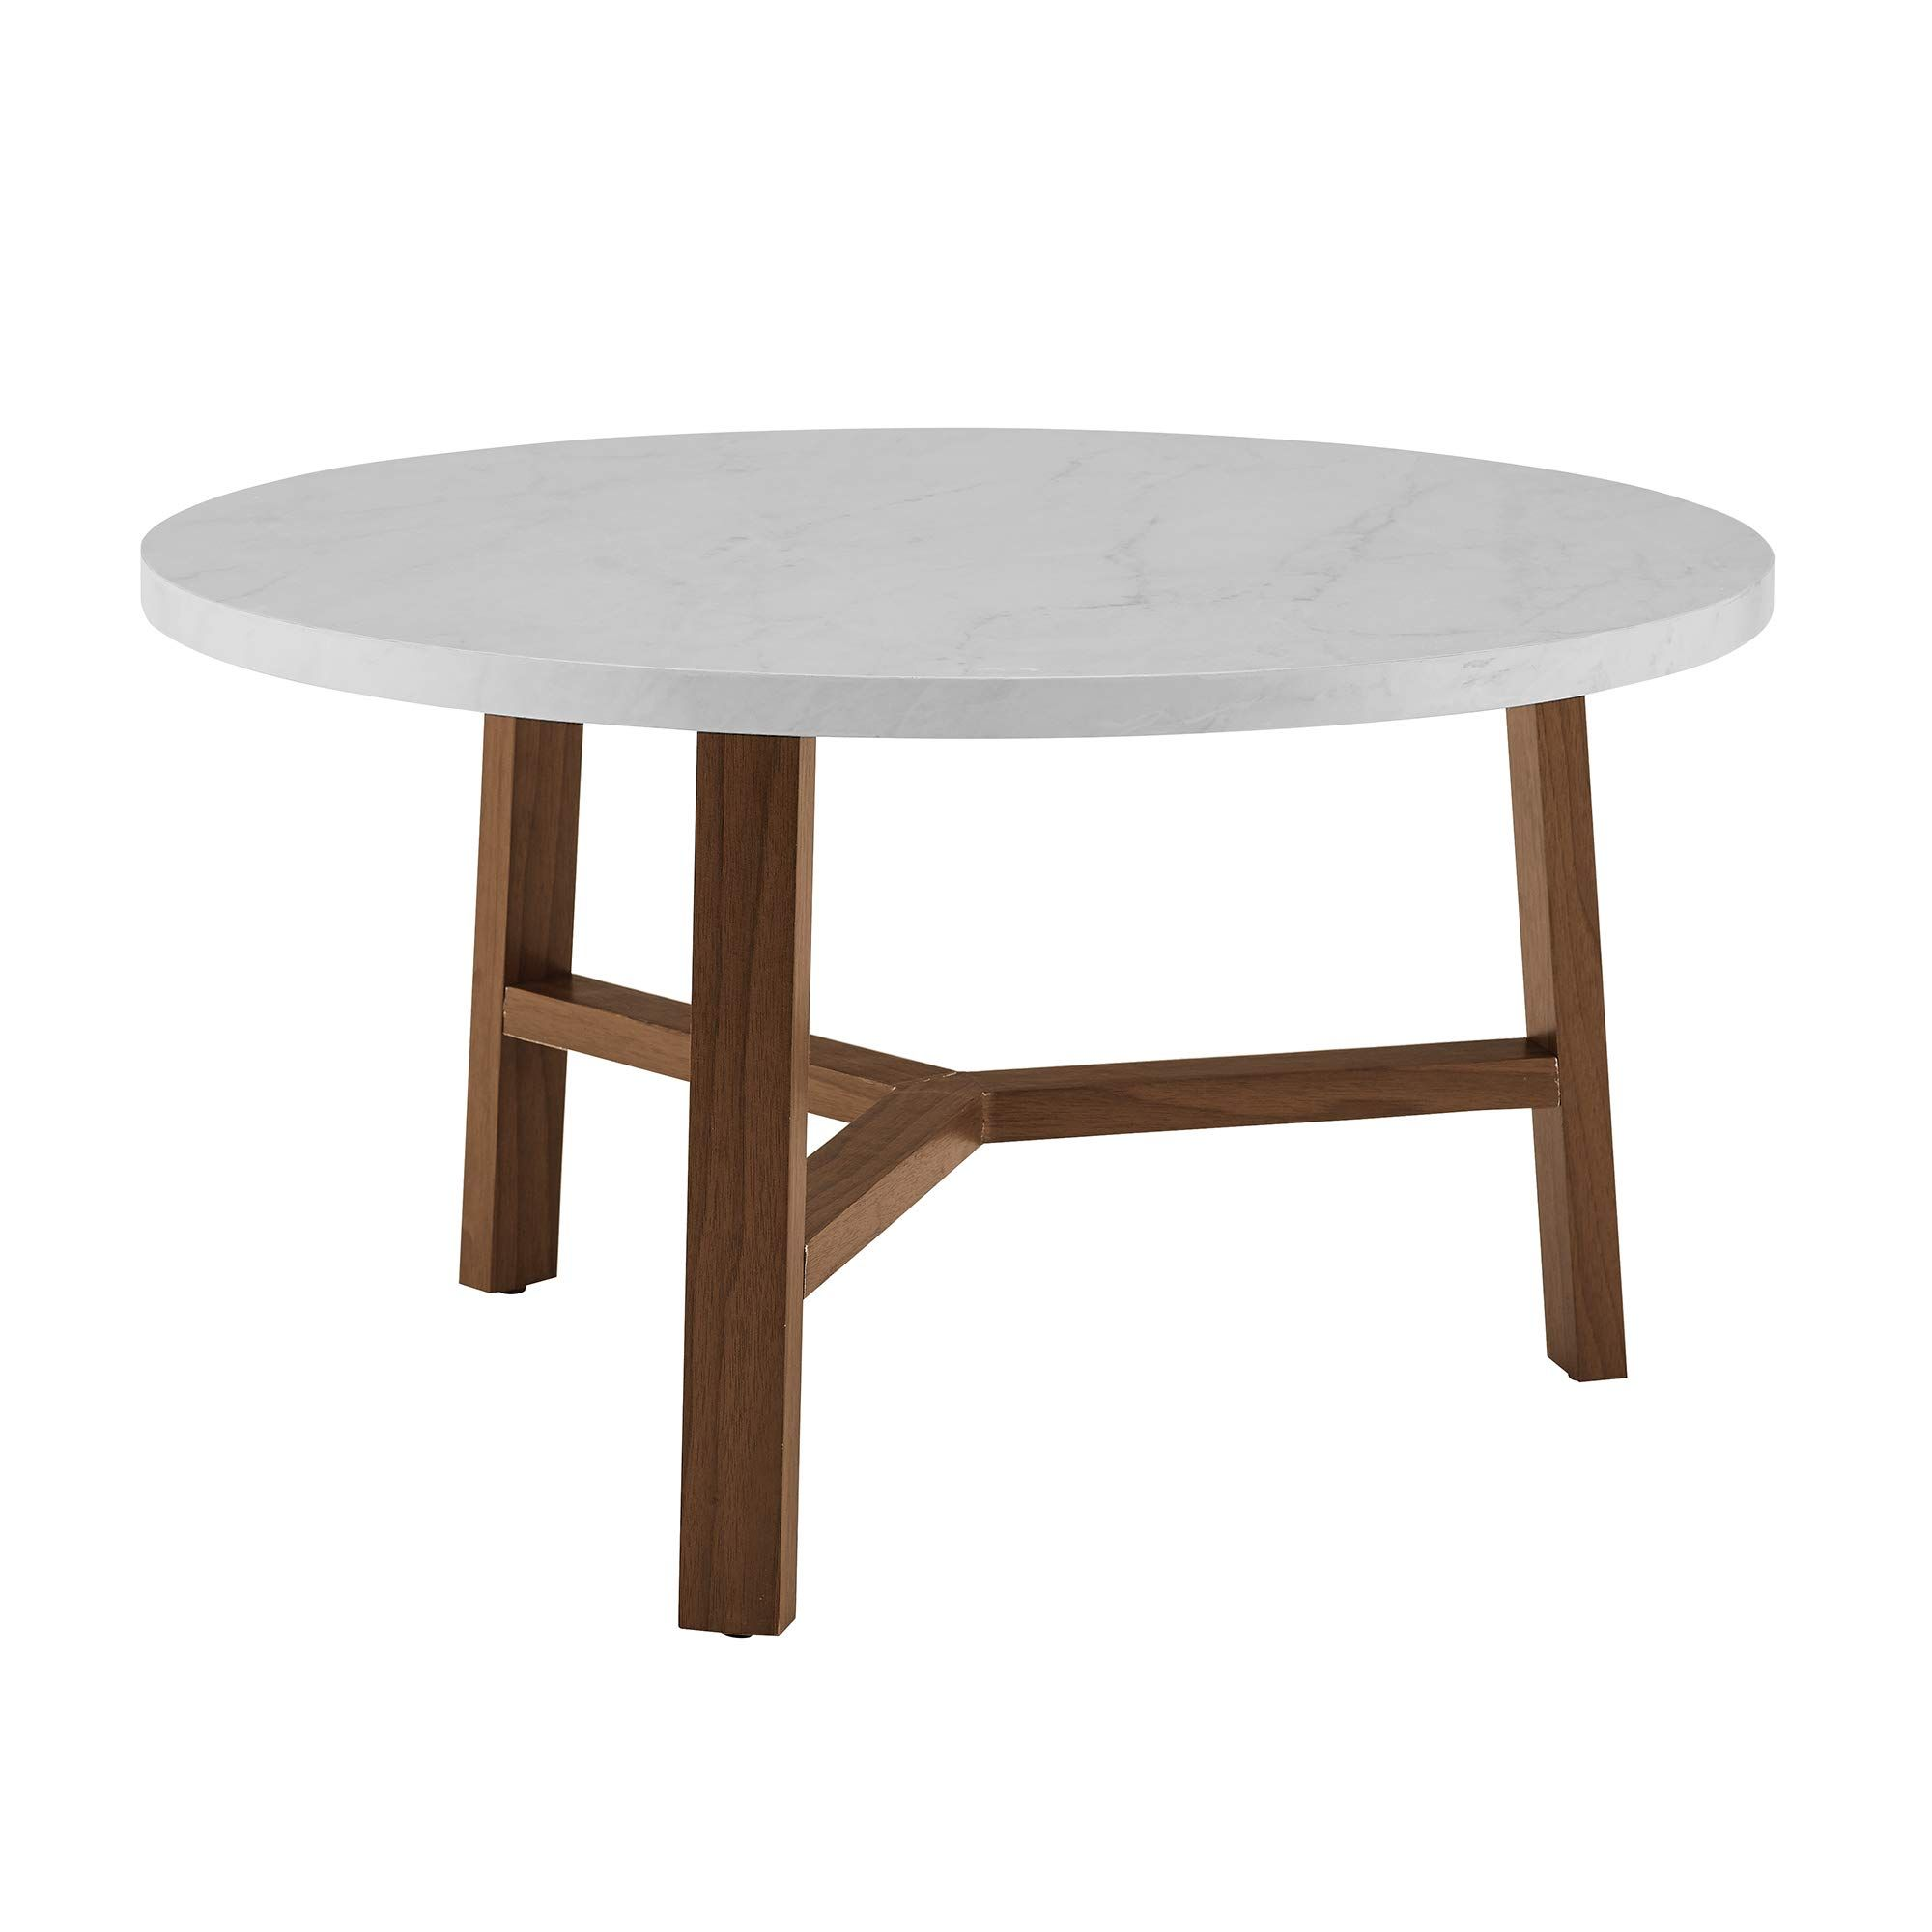 We Furniture Azf30emctpc Coffee Table 30 White Marble And Acorn Check Out The Image By Vi In 2020 Round Coffee Table Modern Coffee Table White Round Coffee Table [ 2000 x 2000 Pixel ]